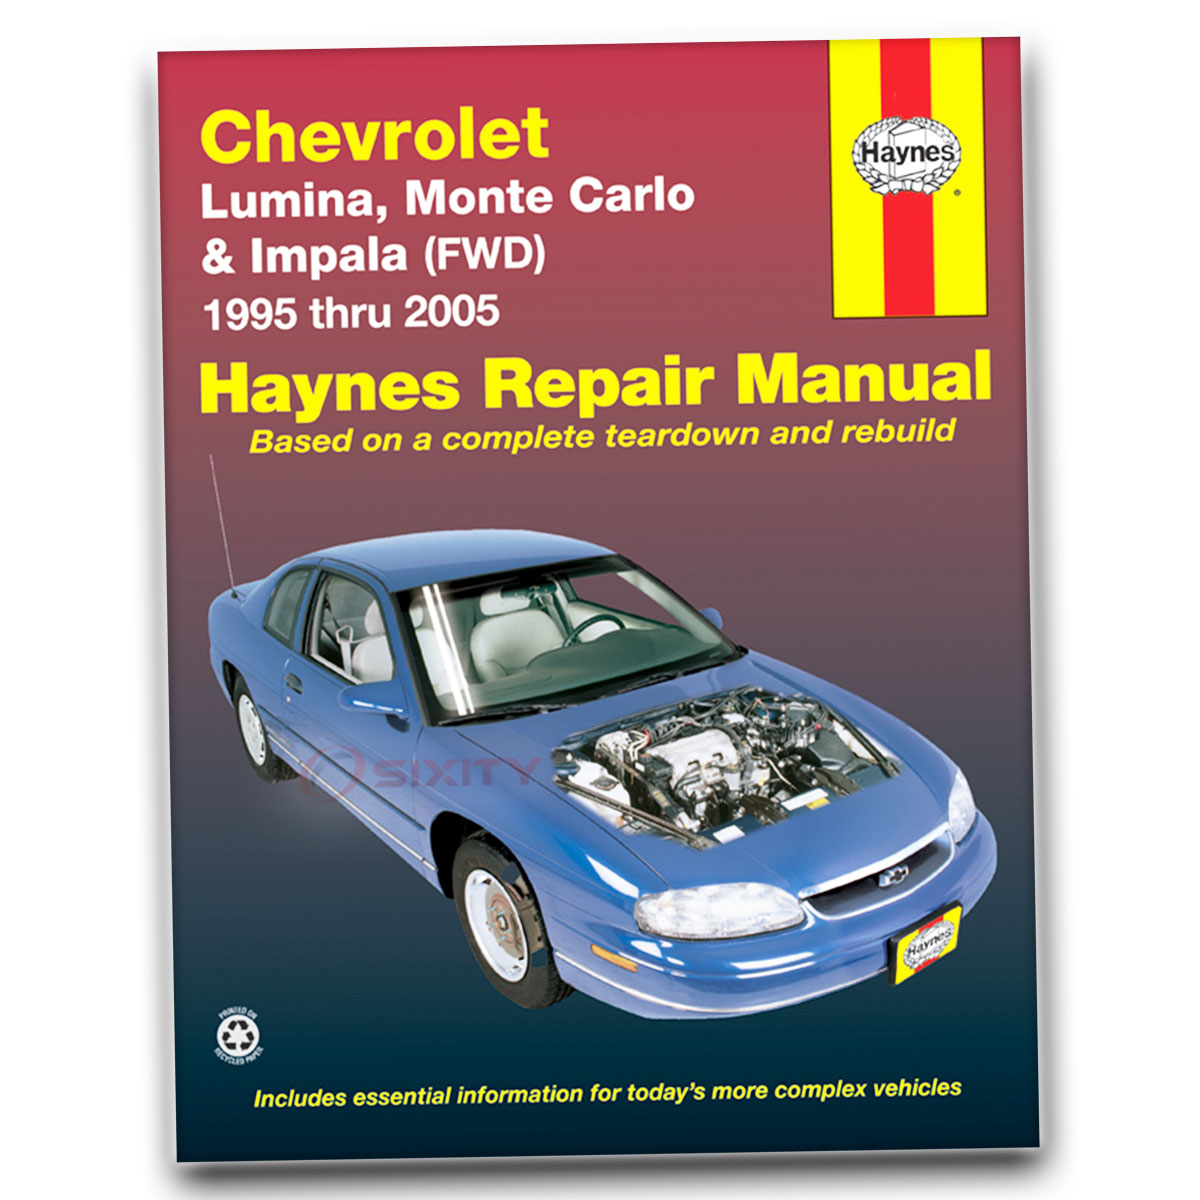 chevy monte carlo haynes repair manual indianapolis 500 pace car ss rh ebay com 2000 chevy impala repair manual free User Manual PDF